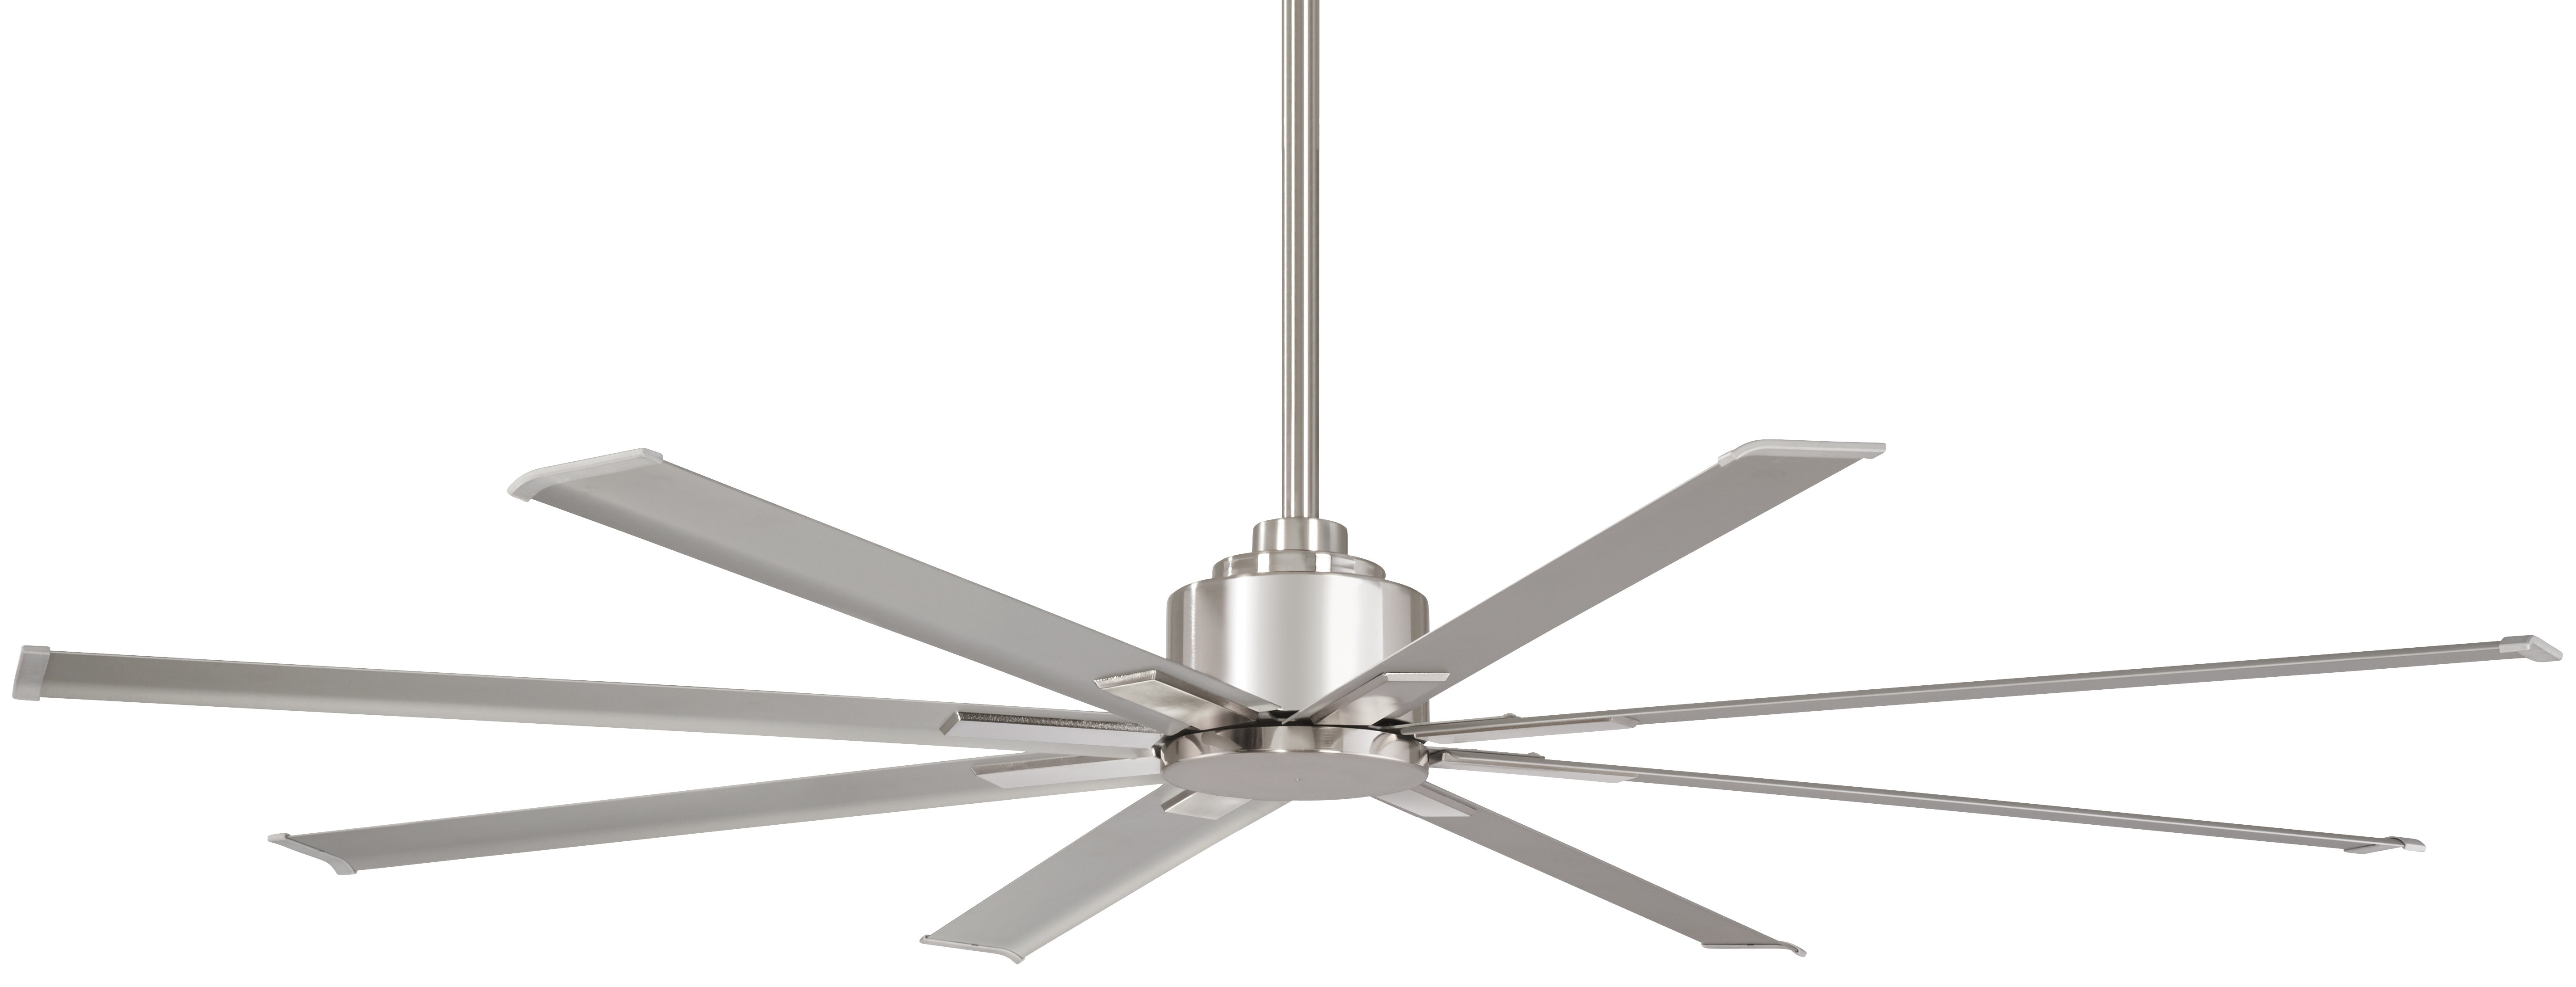 "Trendy Outdoor Ceiling Fans With Metal Blades Regarding Minka Aire 65"" Xtreme 8 Blade Outdoor Ceiling Fan With Remote (View 2 of 20)"